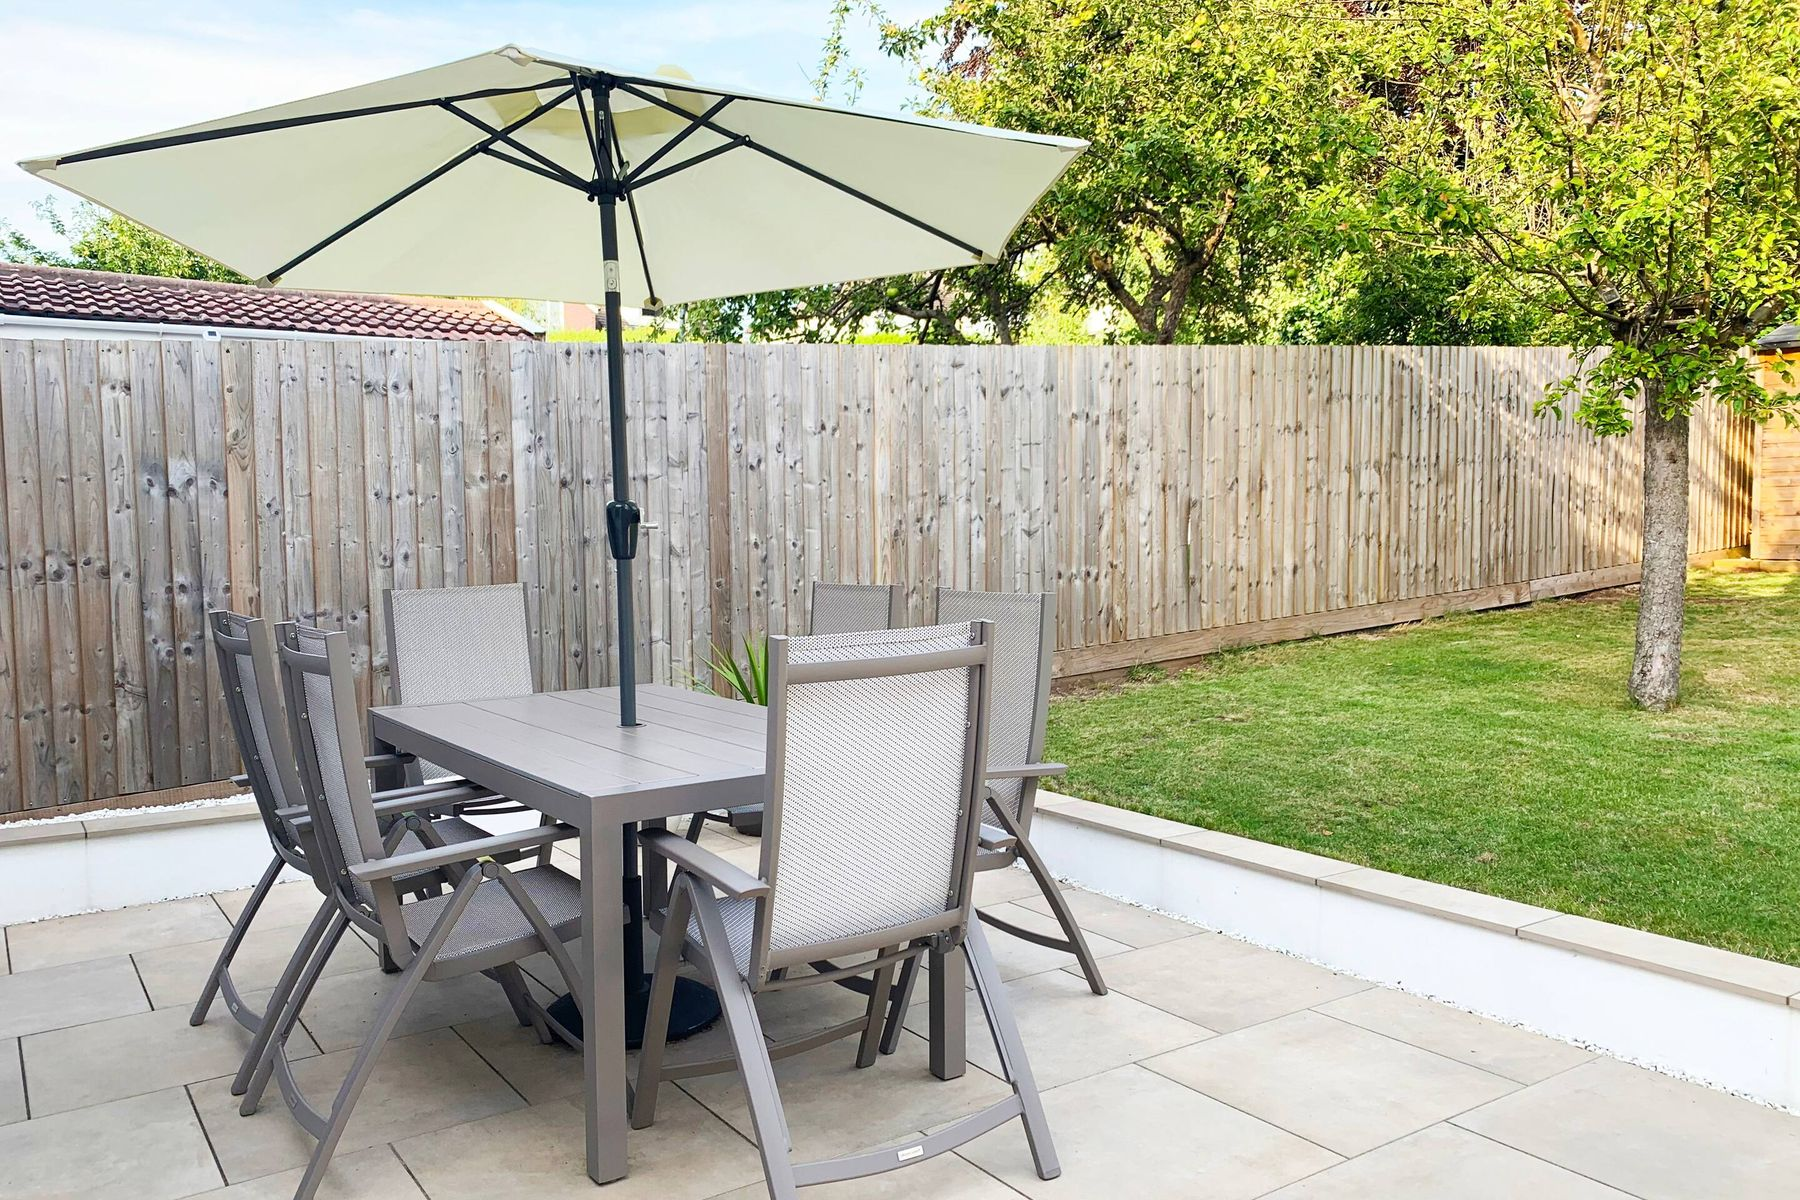 outdoor living space with table and chairs on patio